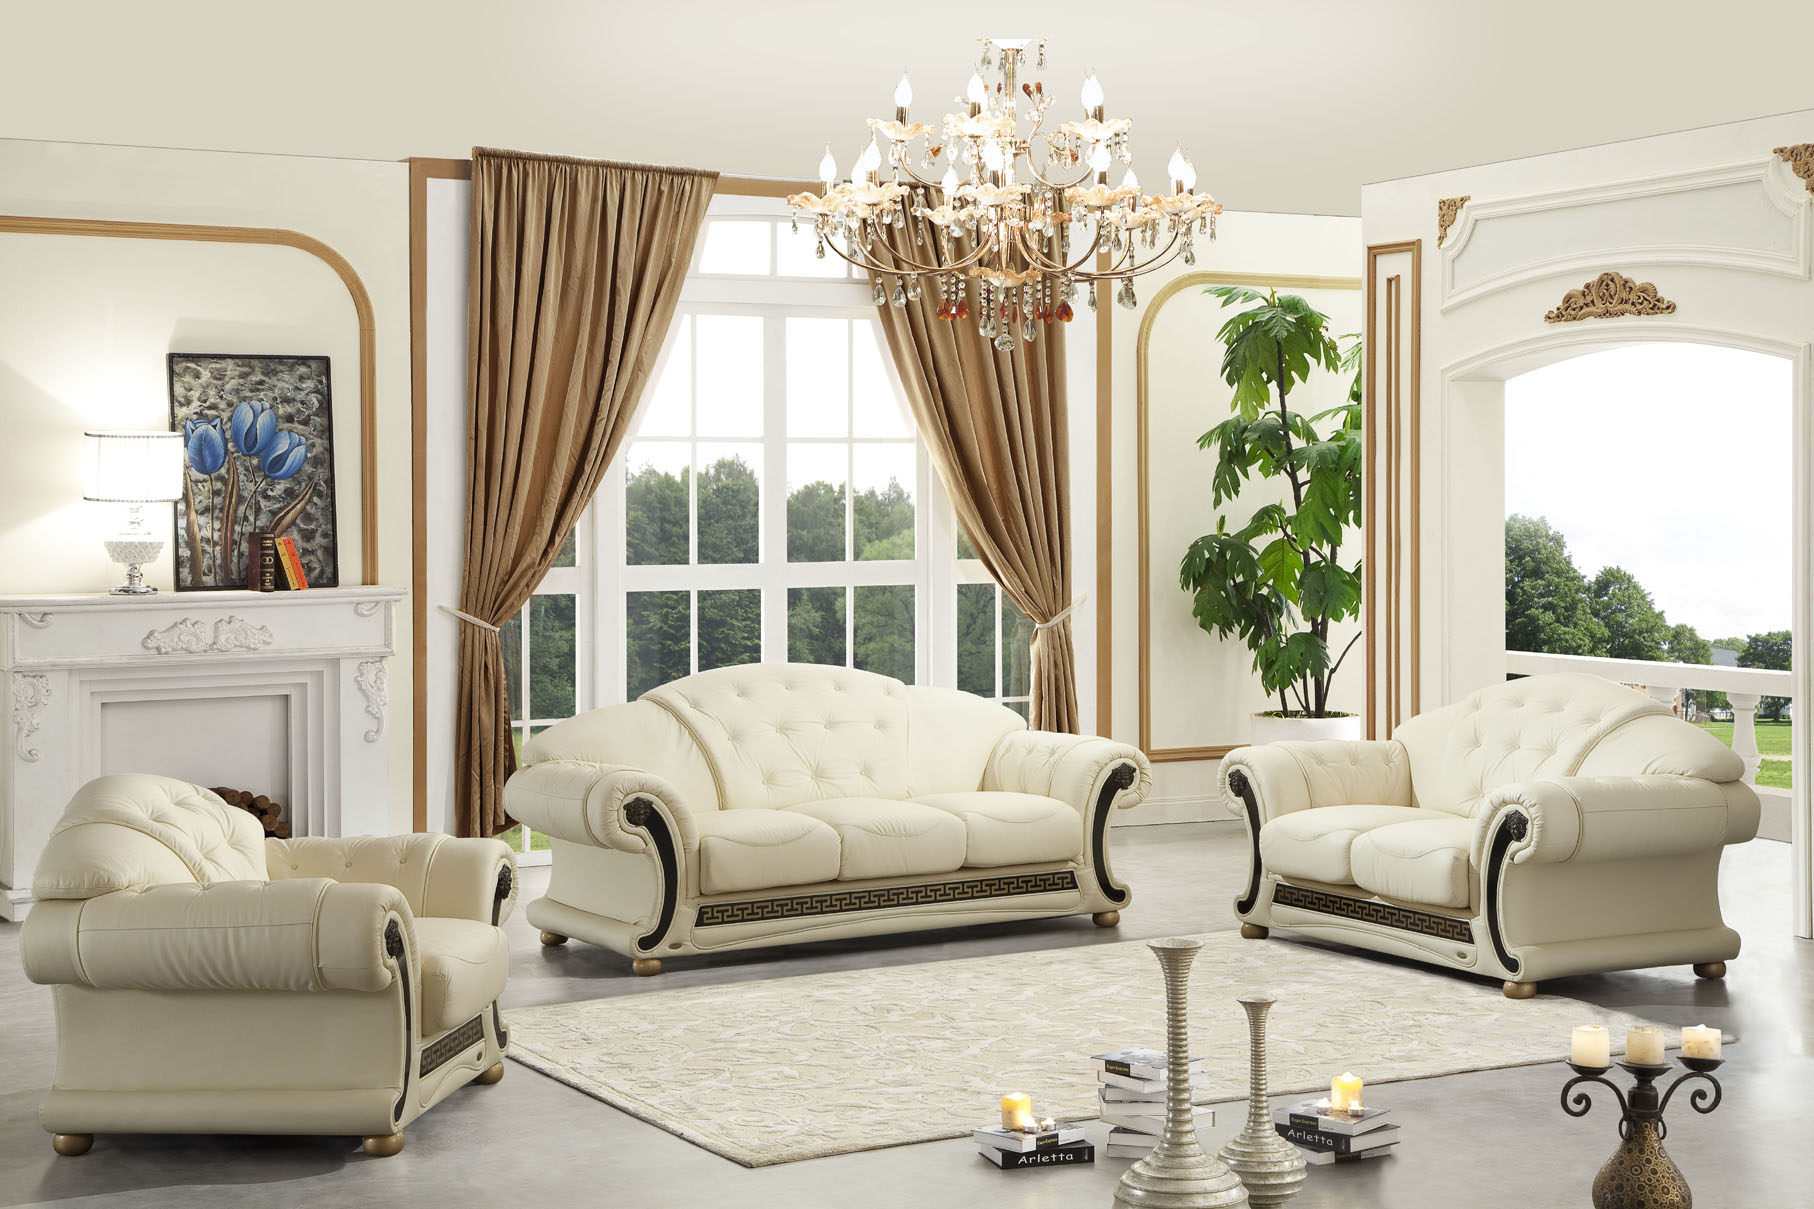 Apolo Living Room Set In Ivory Italian Leather within White Leather Living Room Sets